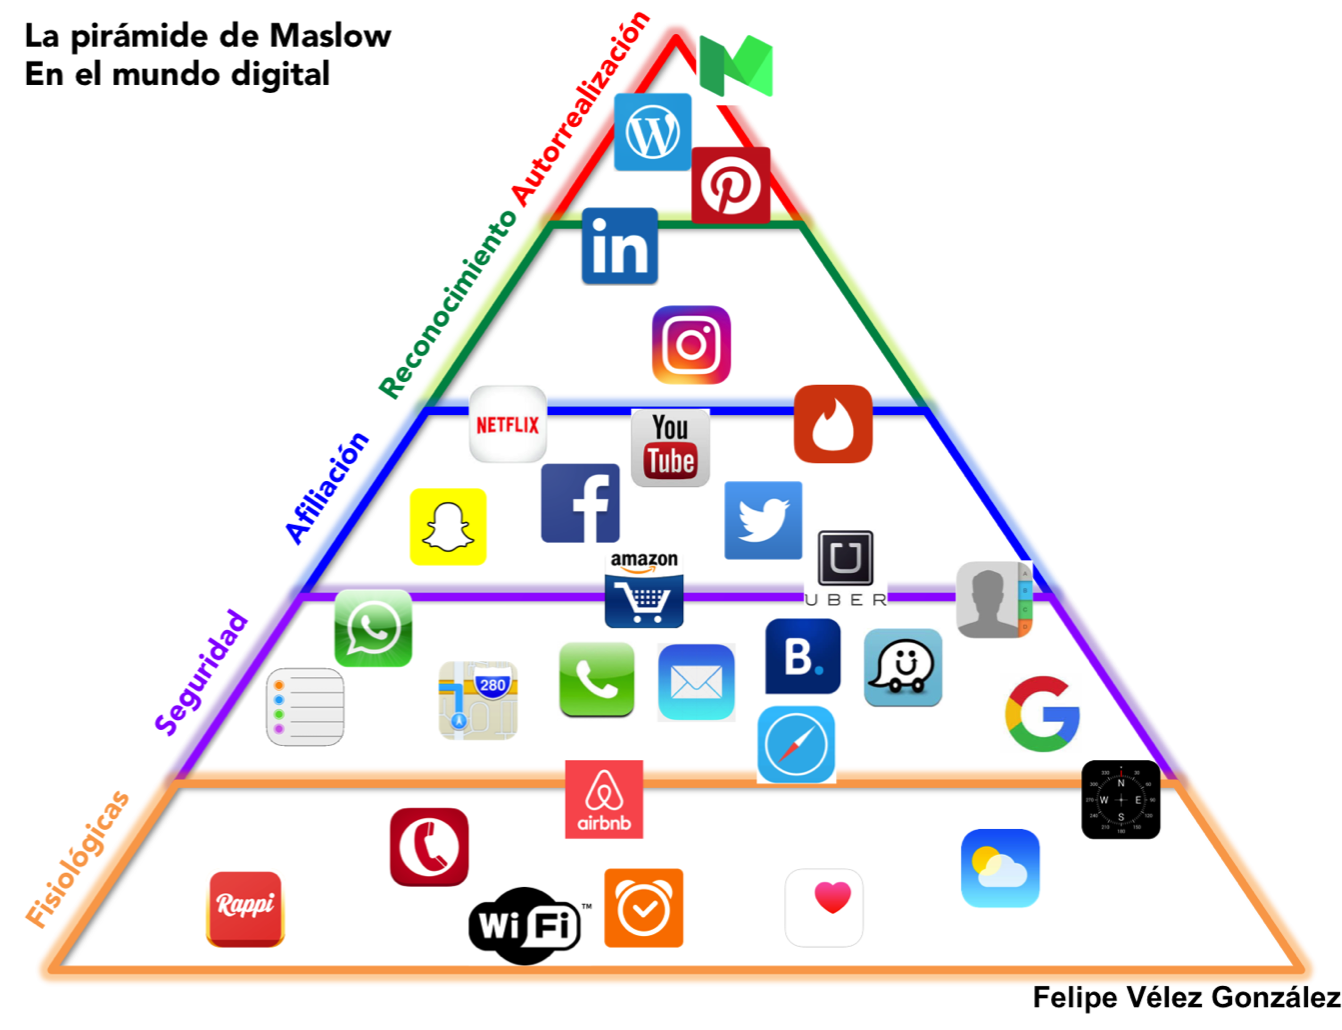 piramide maslow digital